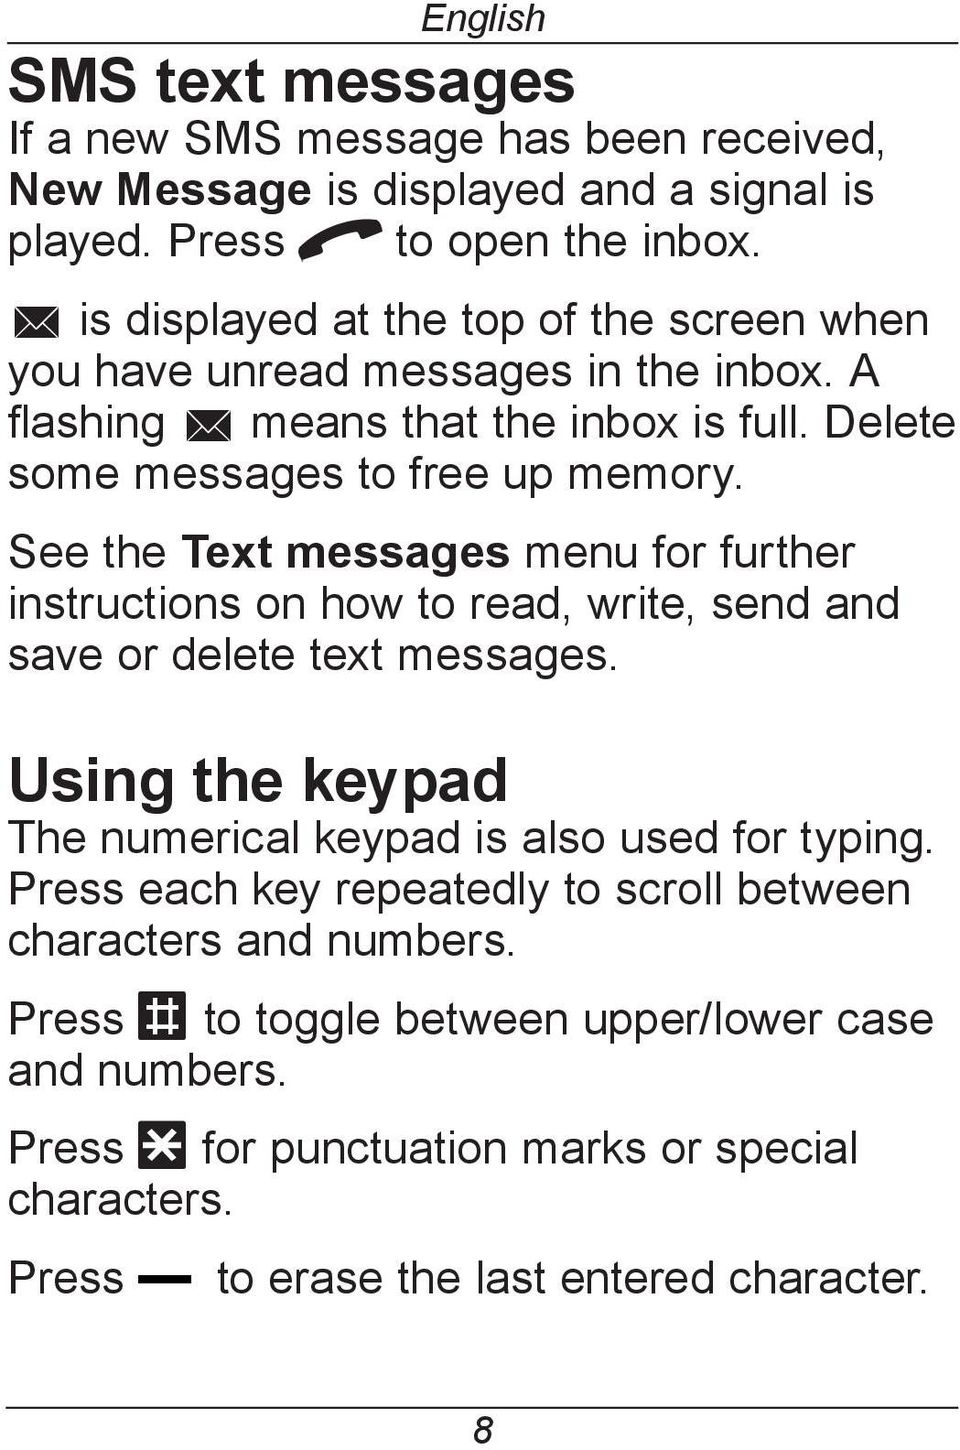 See the Text messages menu for further instructions on how to read, write, send and save or delete text messages. Using the keypad The numerical keypad is also used for typing.